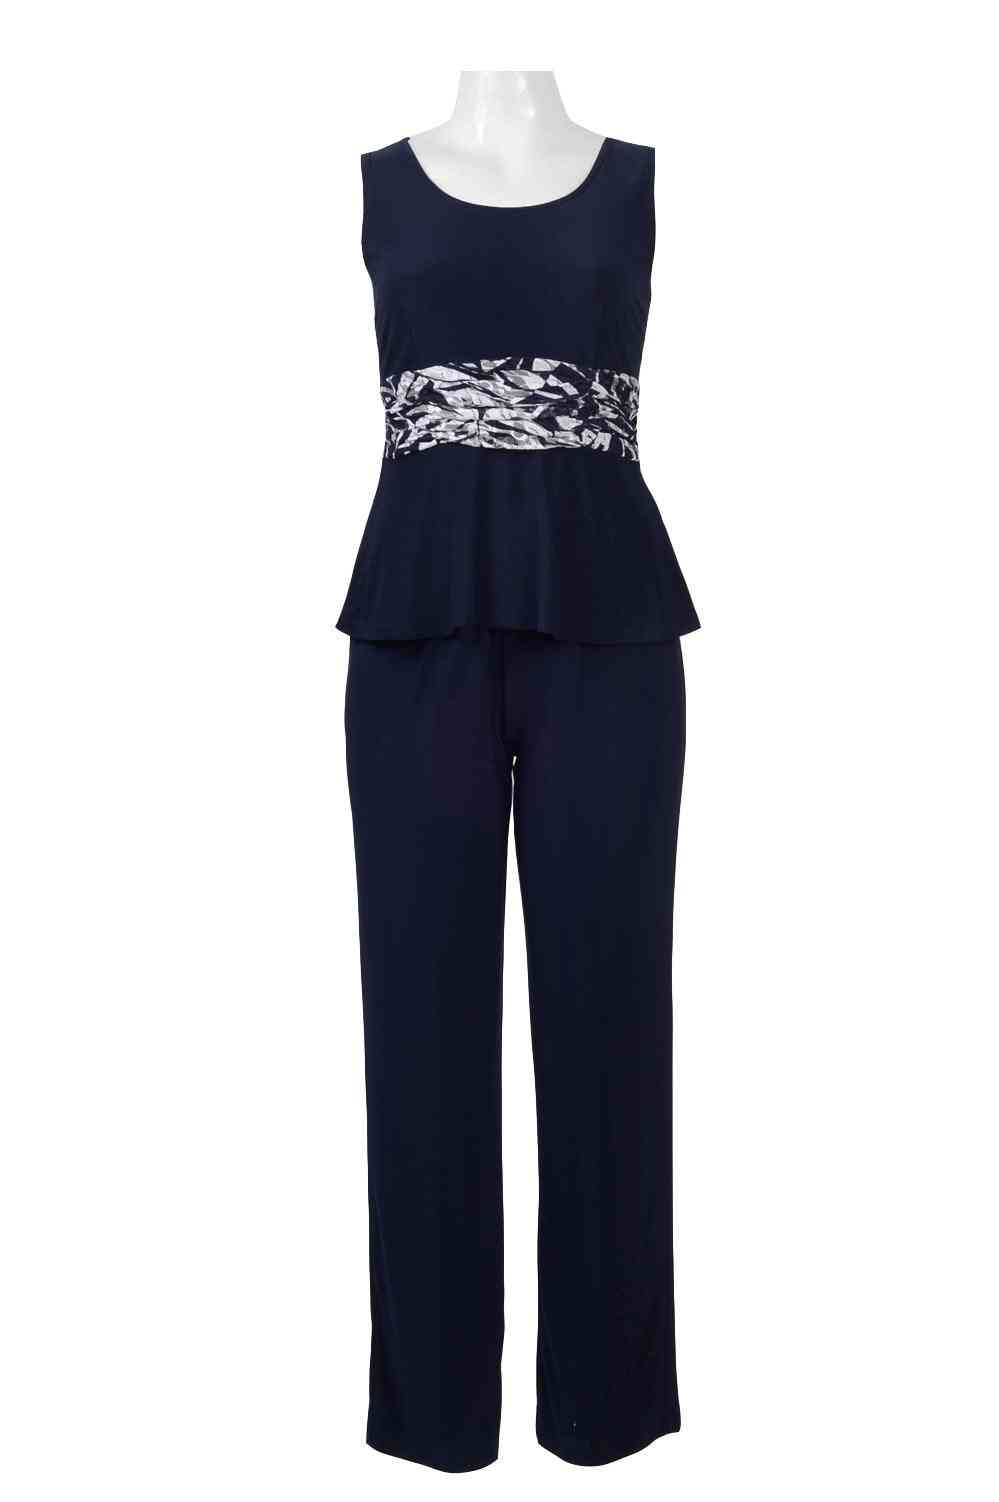 O-neck Sleeveless Popover Jersey Jumpsuit With Lace